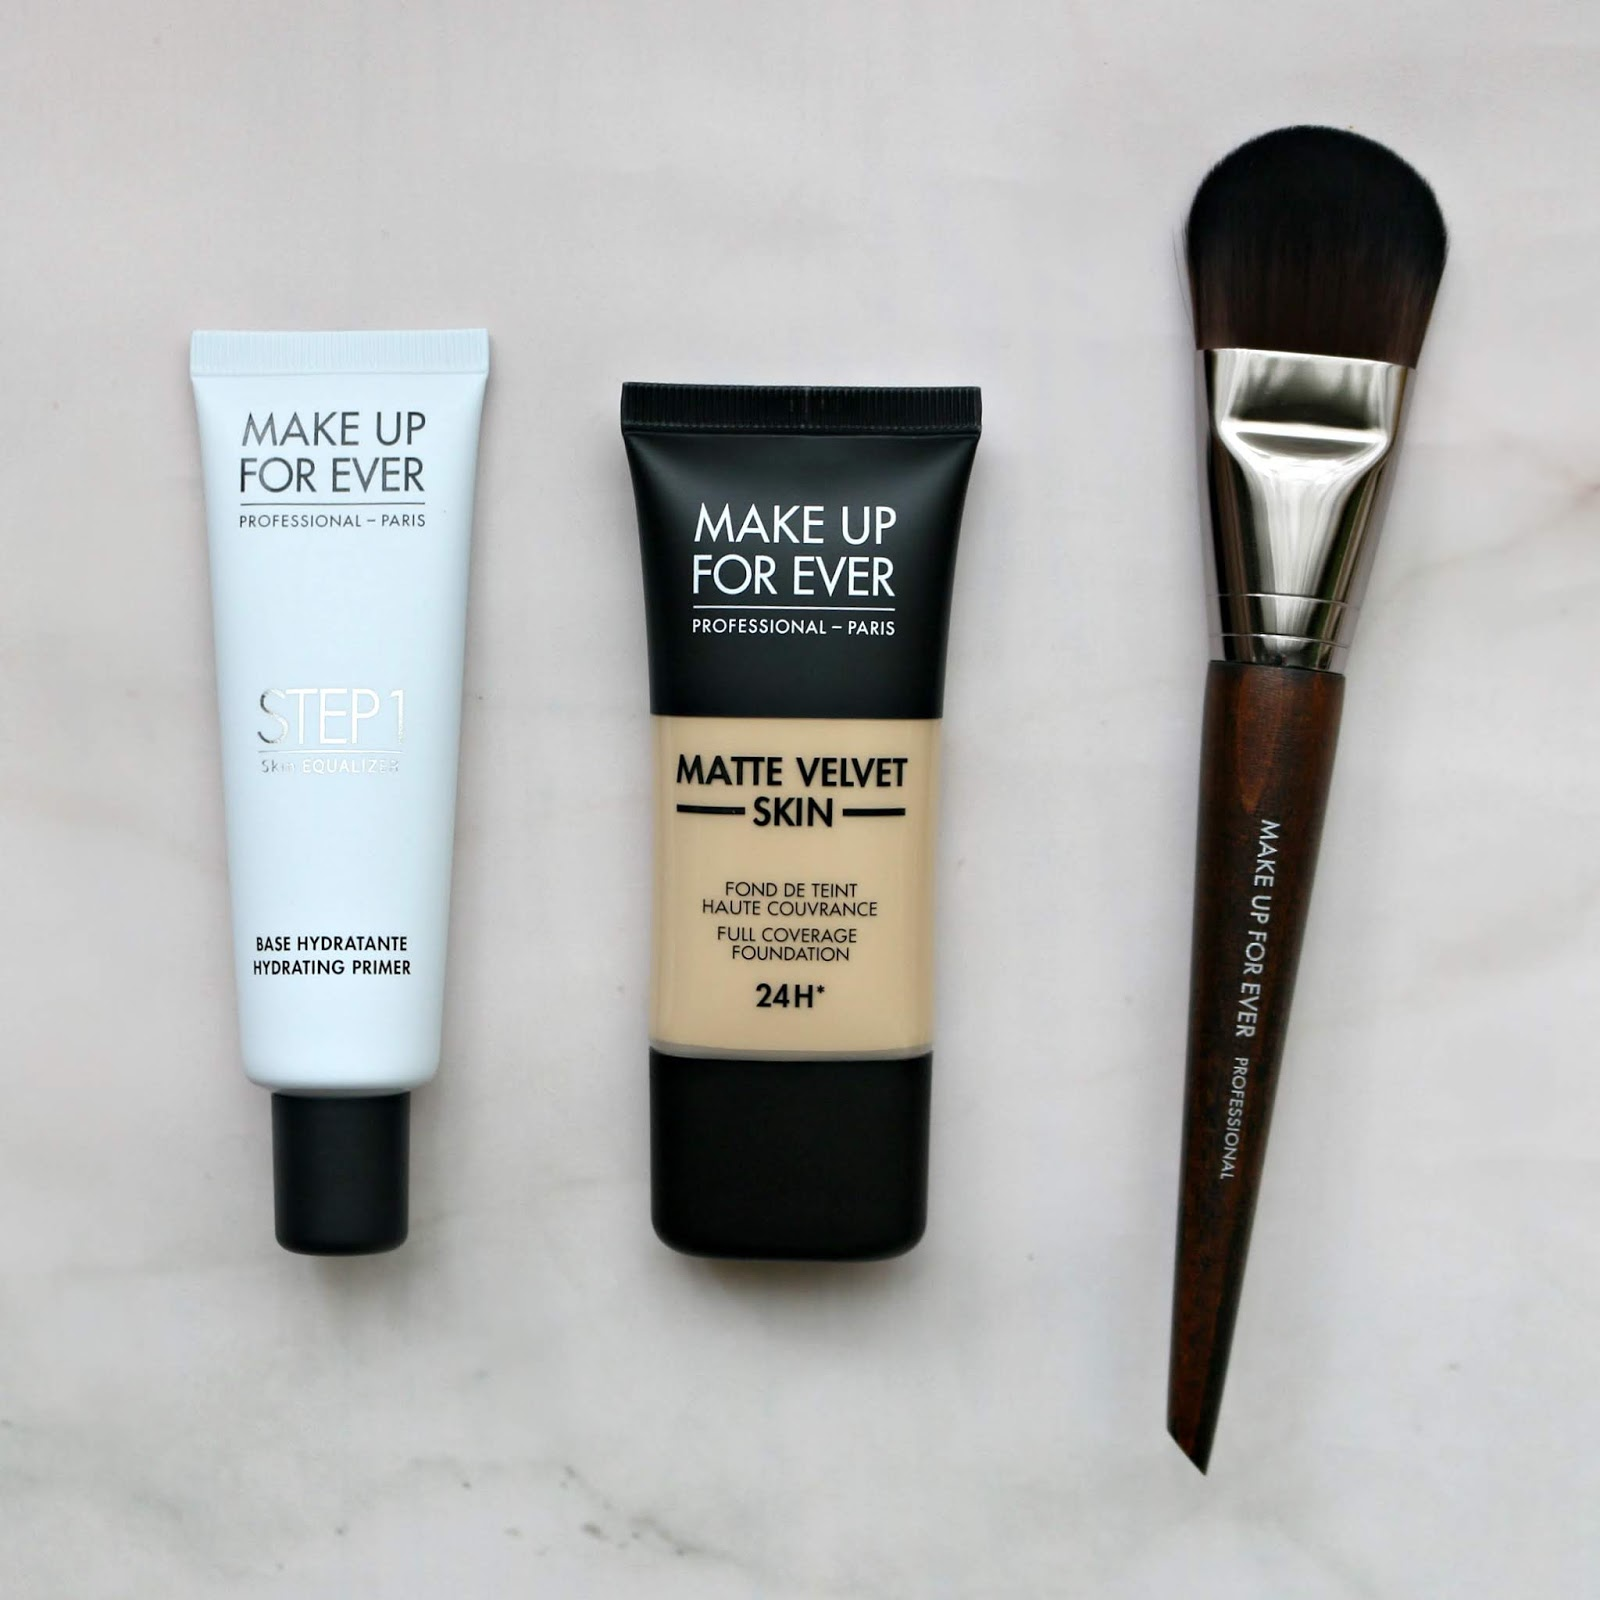 Make Up For Ever Matte Velvet Skin Foundation Y235 Step 1 Skin Equalizer Hydrating Primer 108 Large Foundation Brush Review